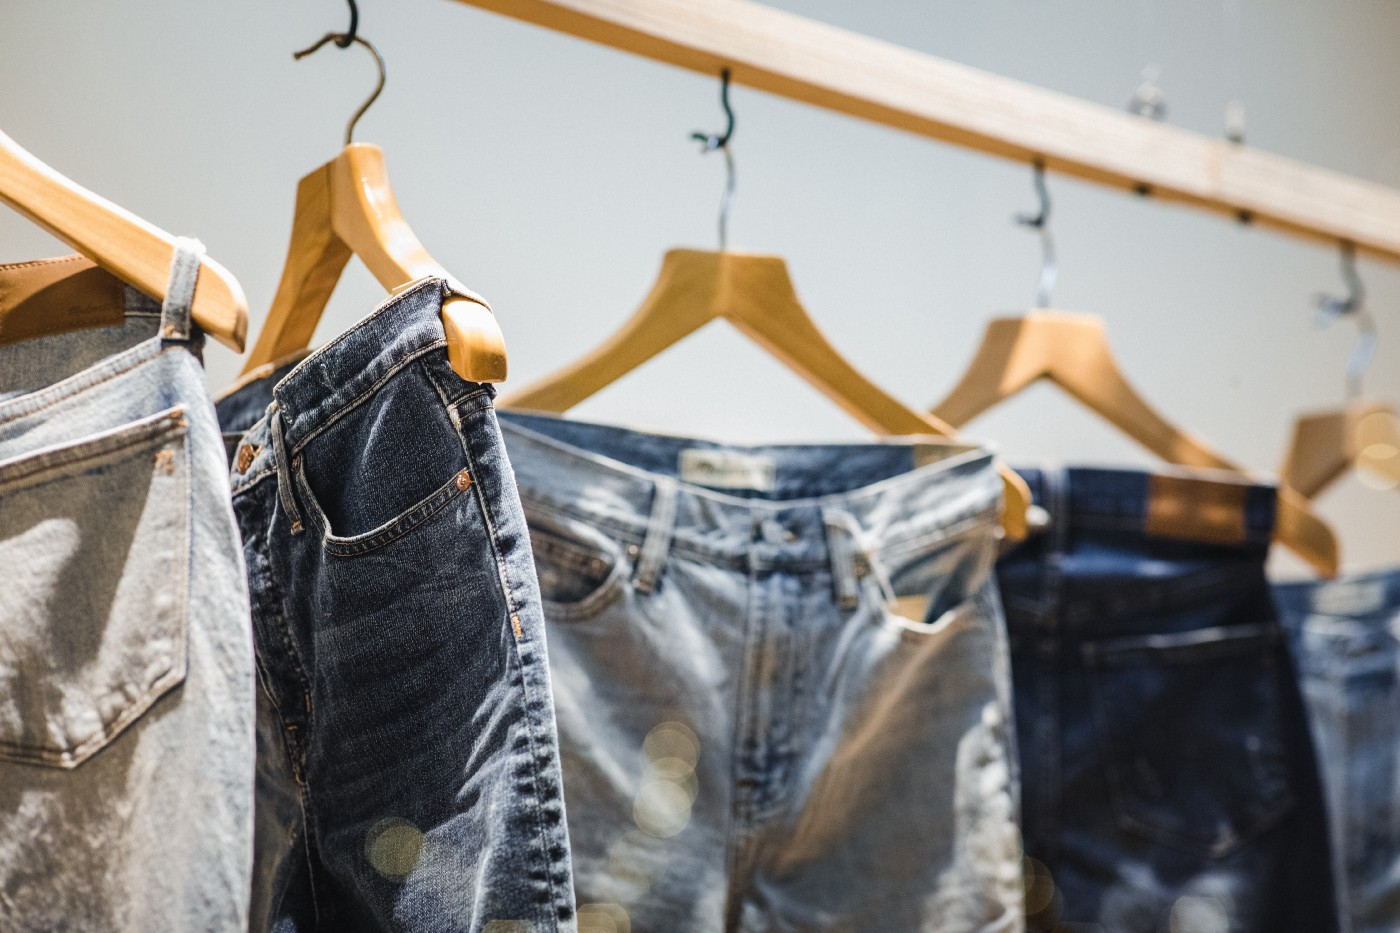 Several pairs of jeans on hangers.